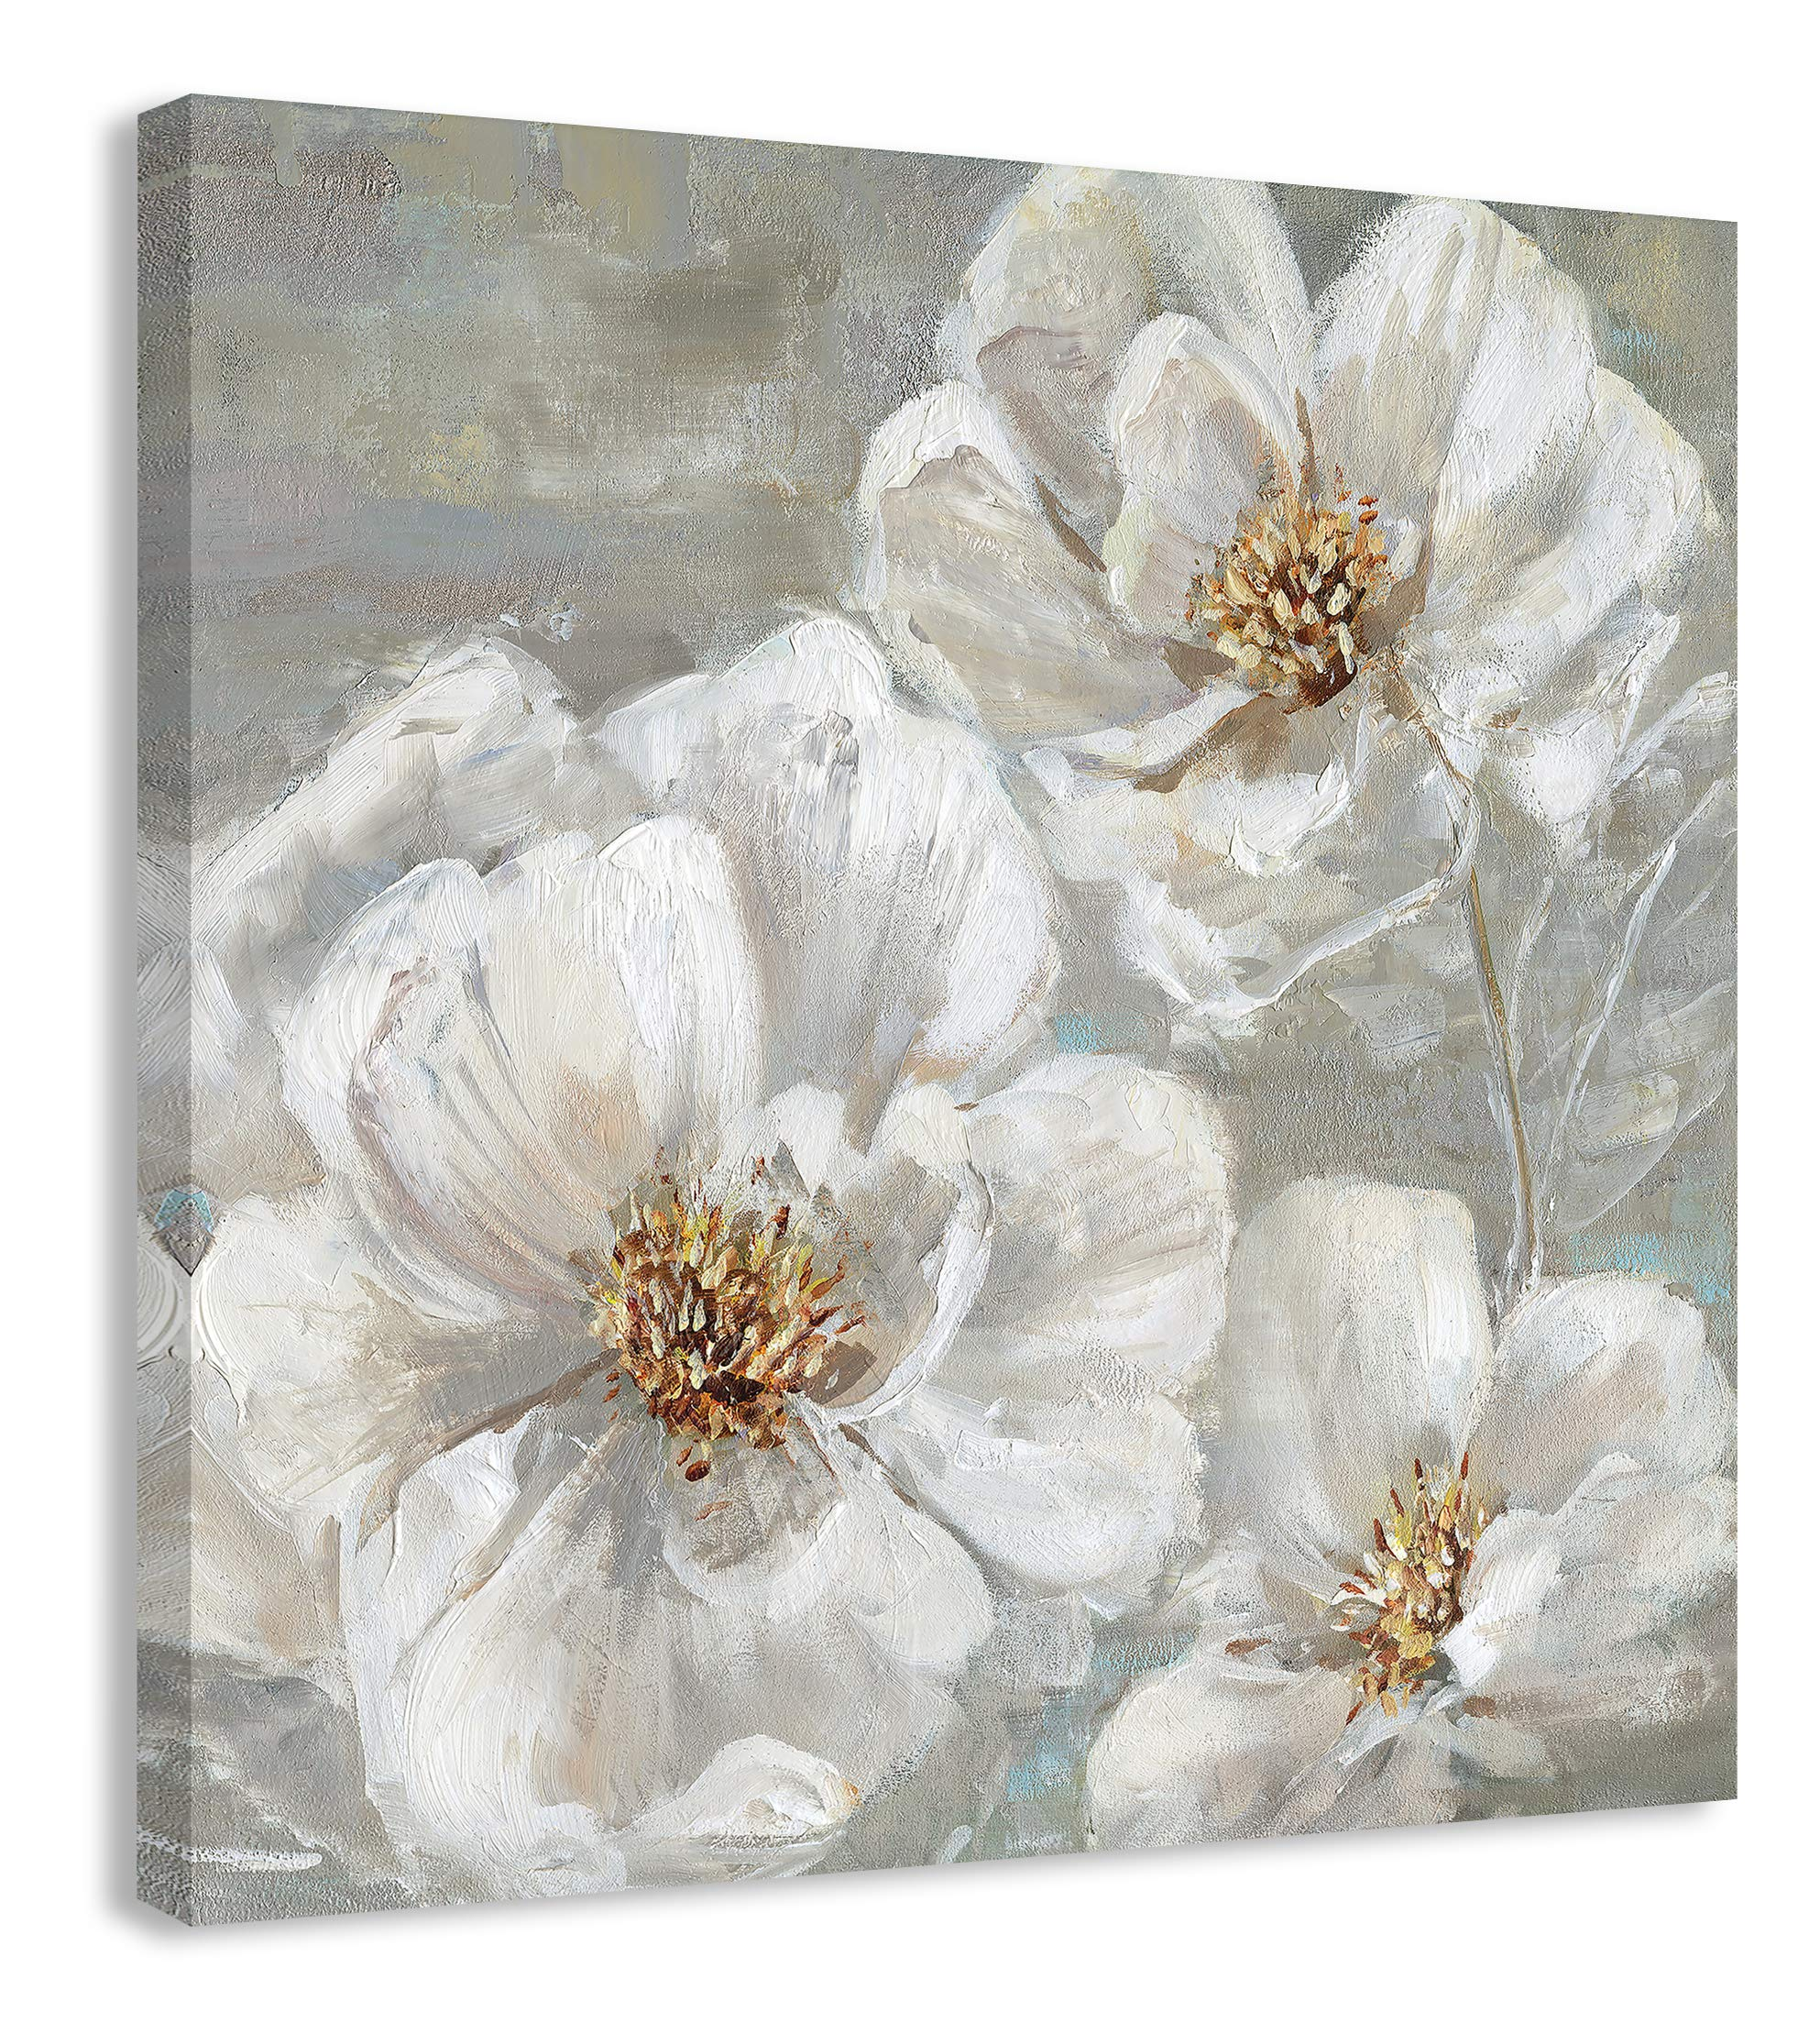 Casa Fine Arts Summer Solstice II White and Grey Transitional Floral Canvas Wall Art, 36'' x 36'', Multicolor by Casa Fine Arts